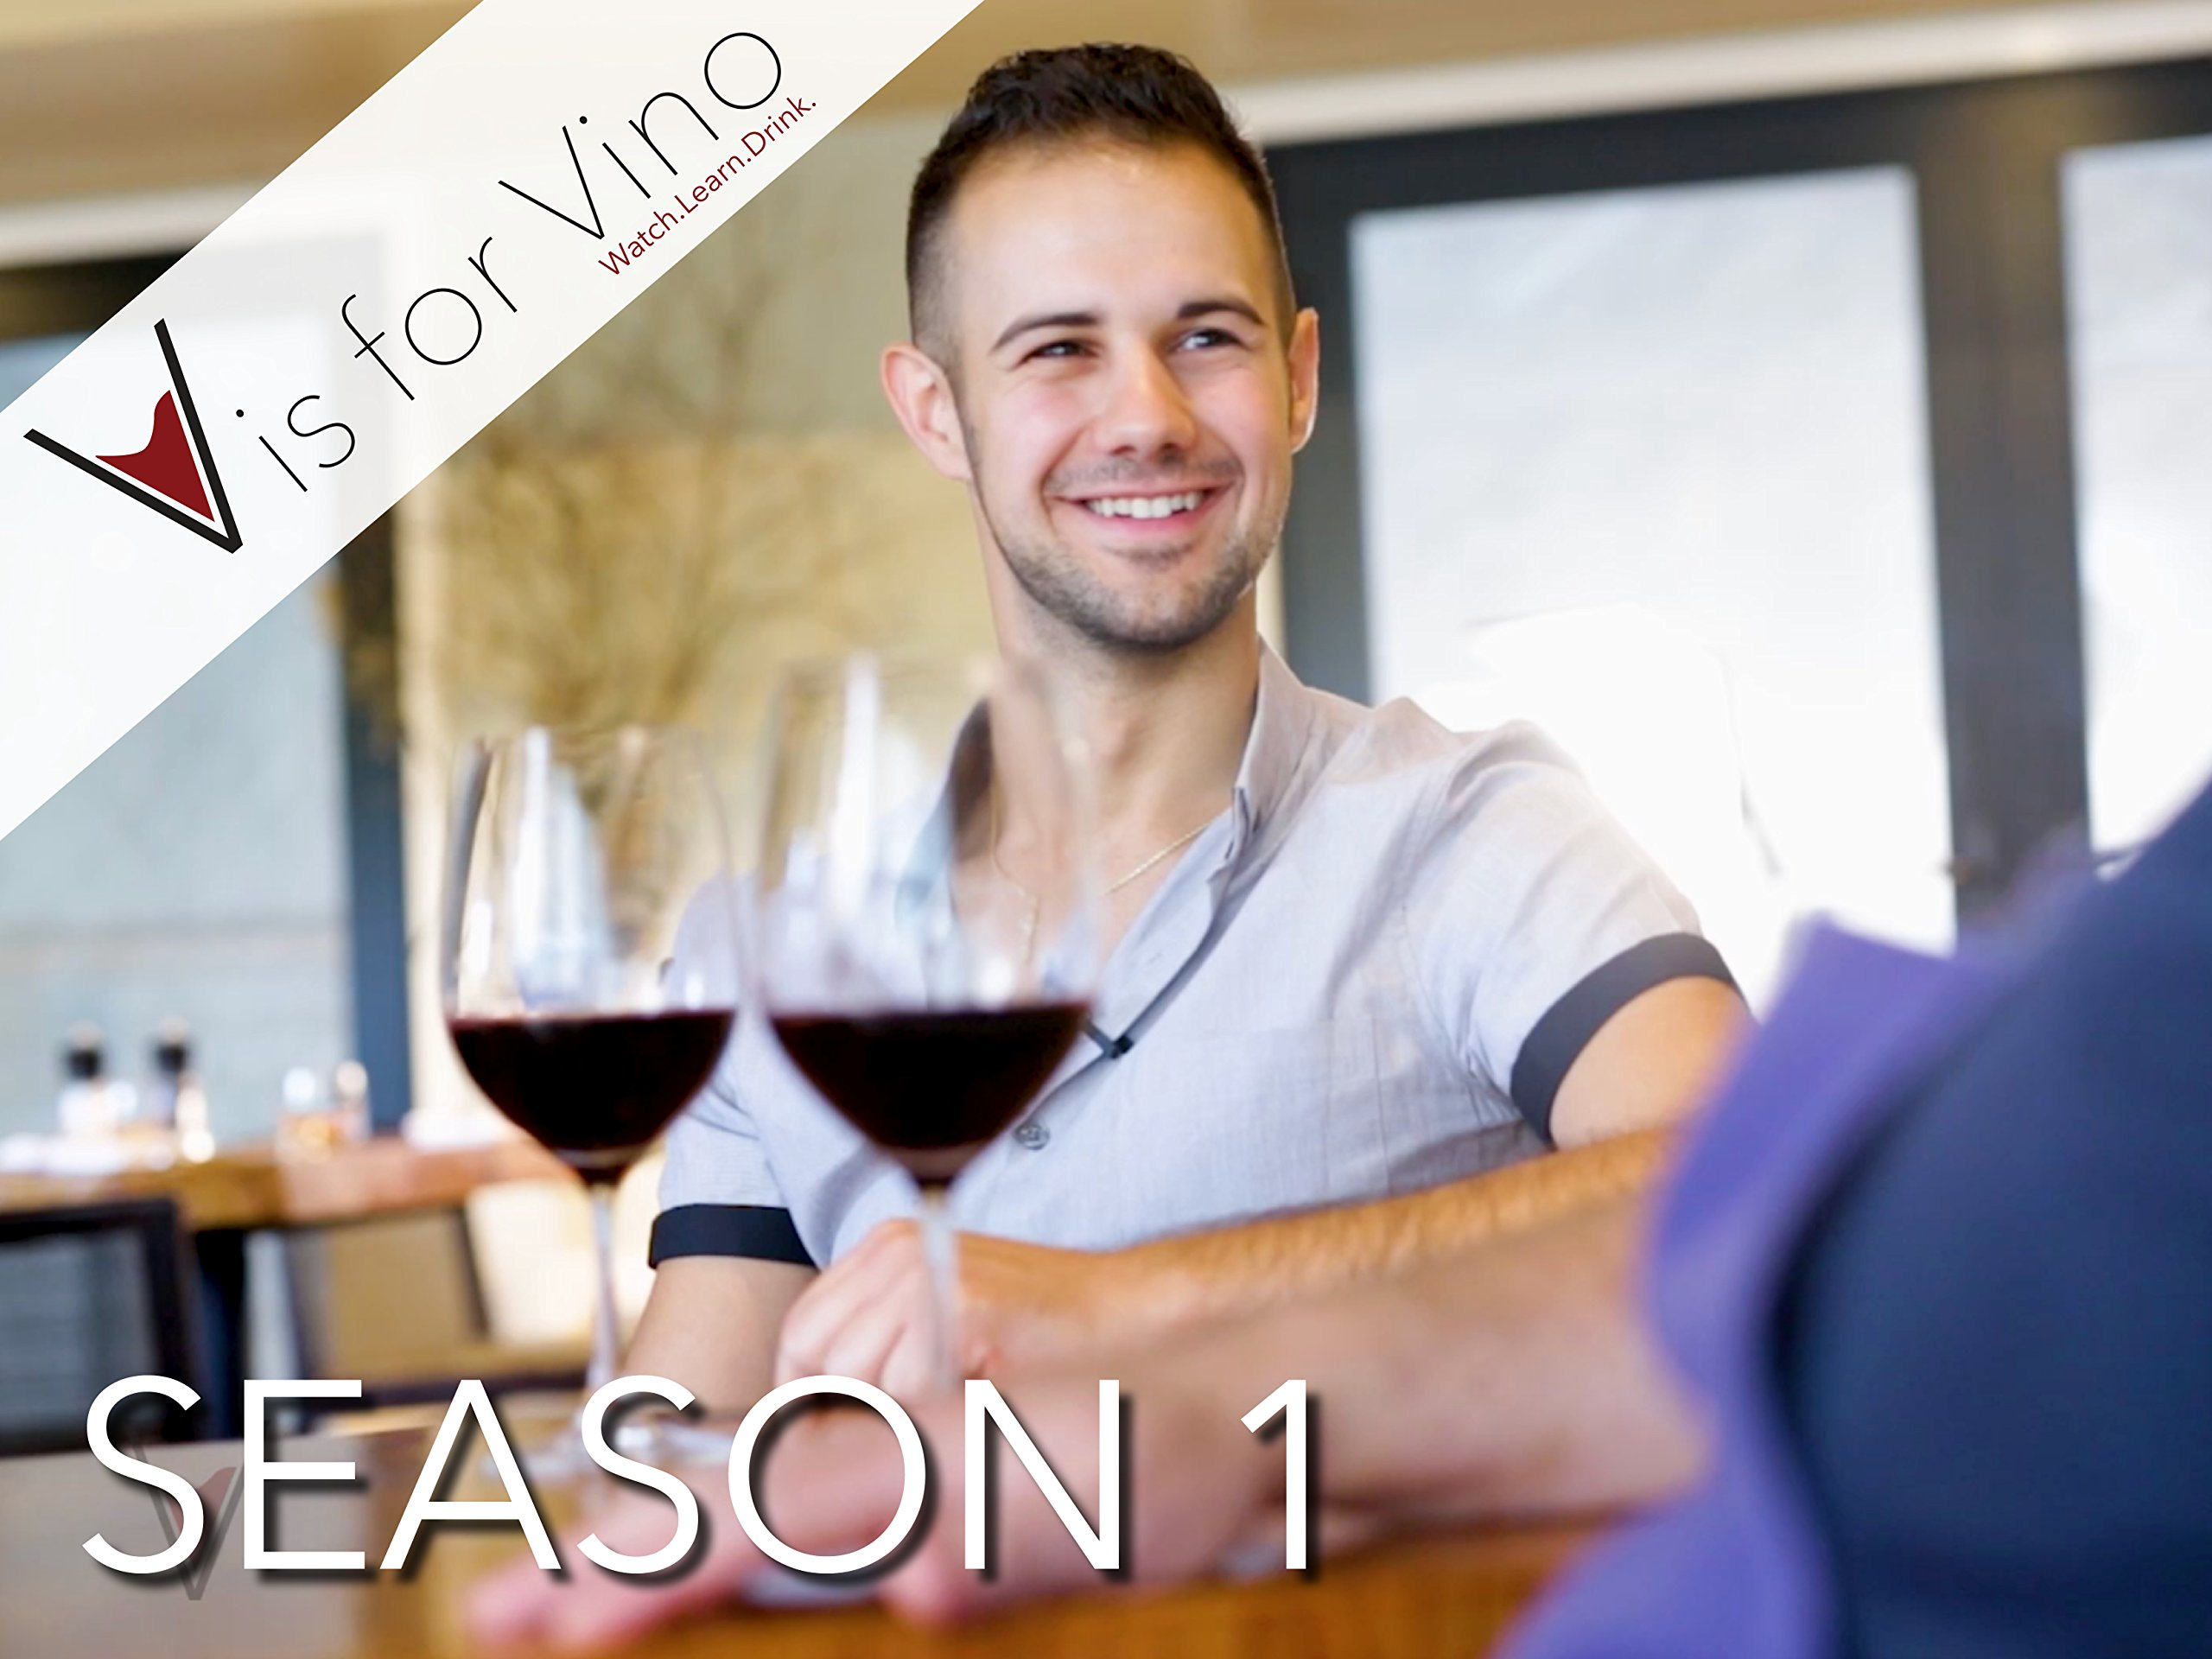 V is for Vino - Season 1